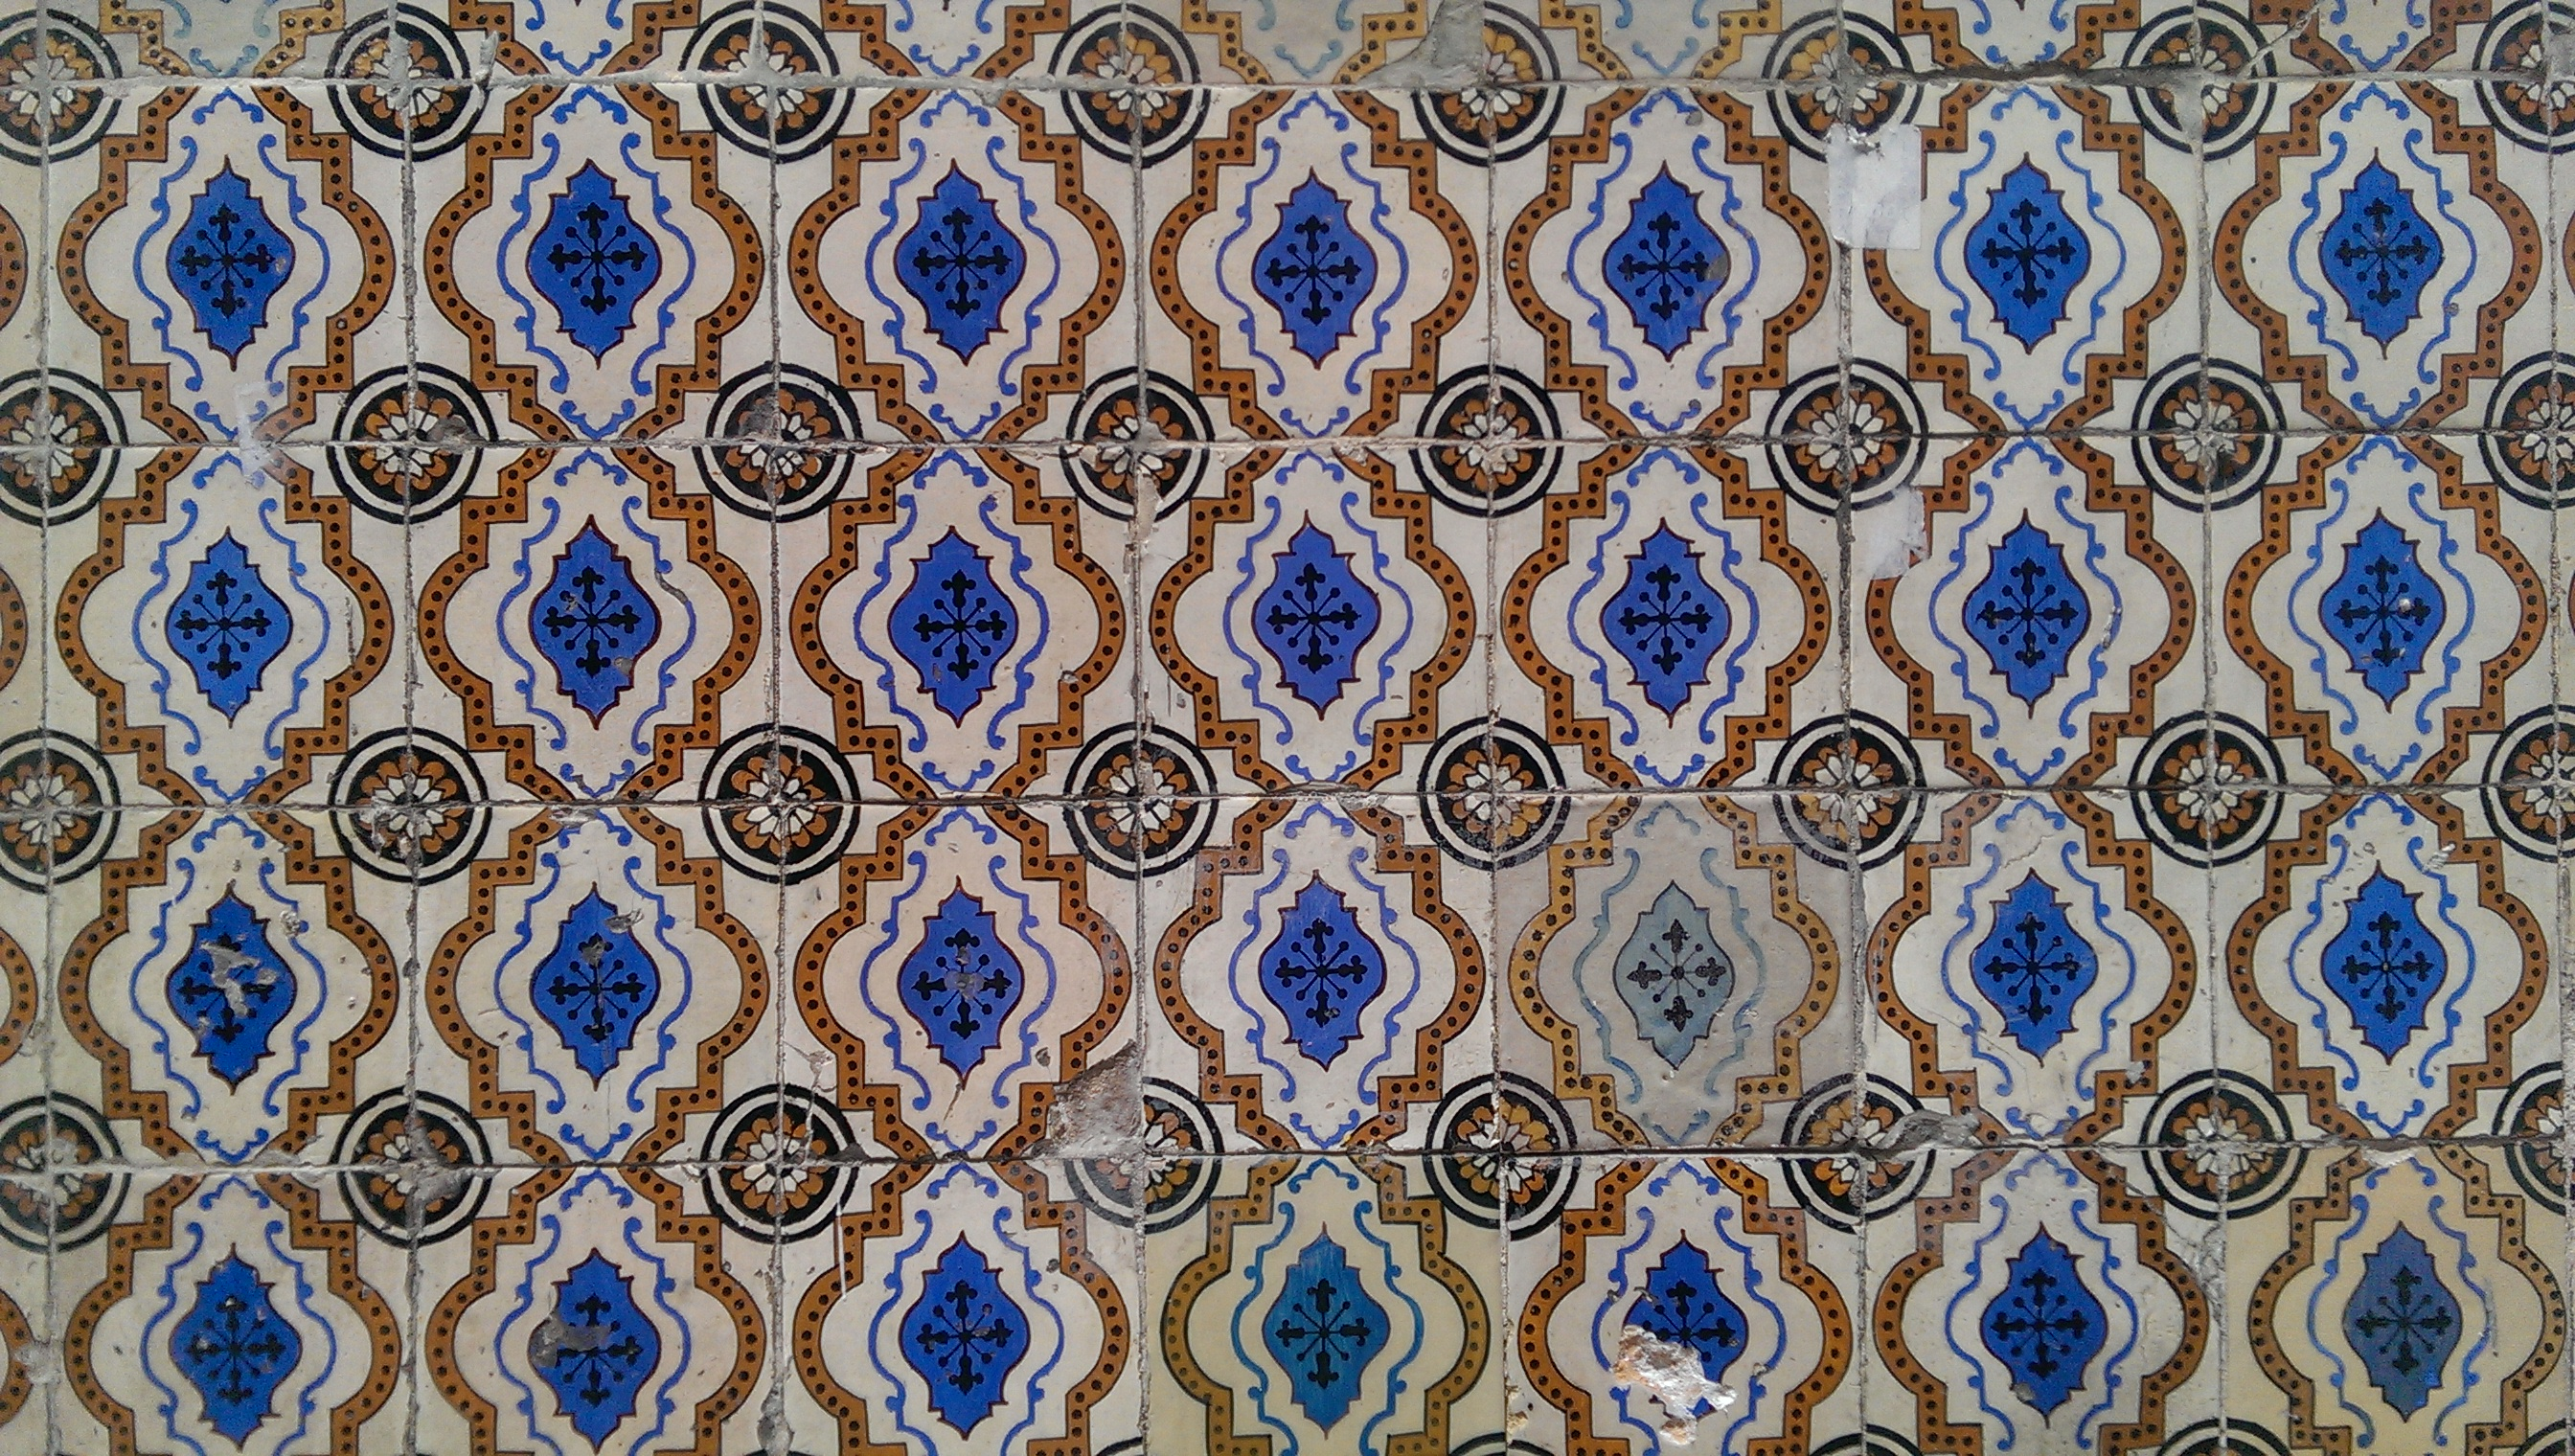 Tiles in Lisbon: A Look at an Important Part of Portuguese Heritage ...